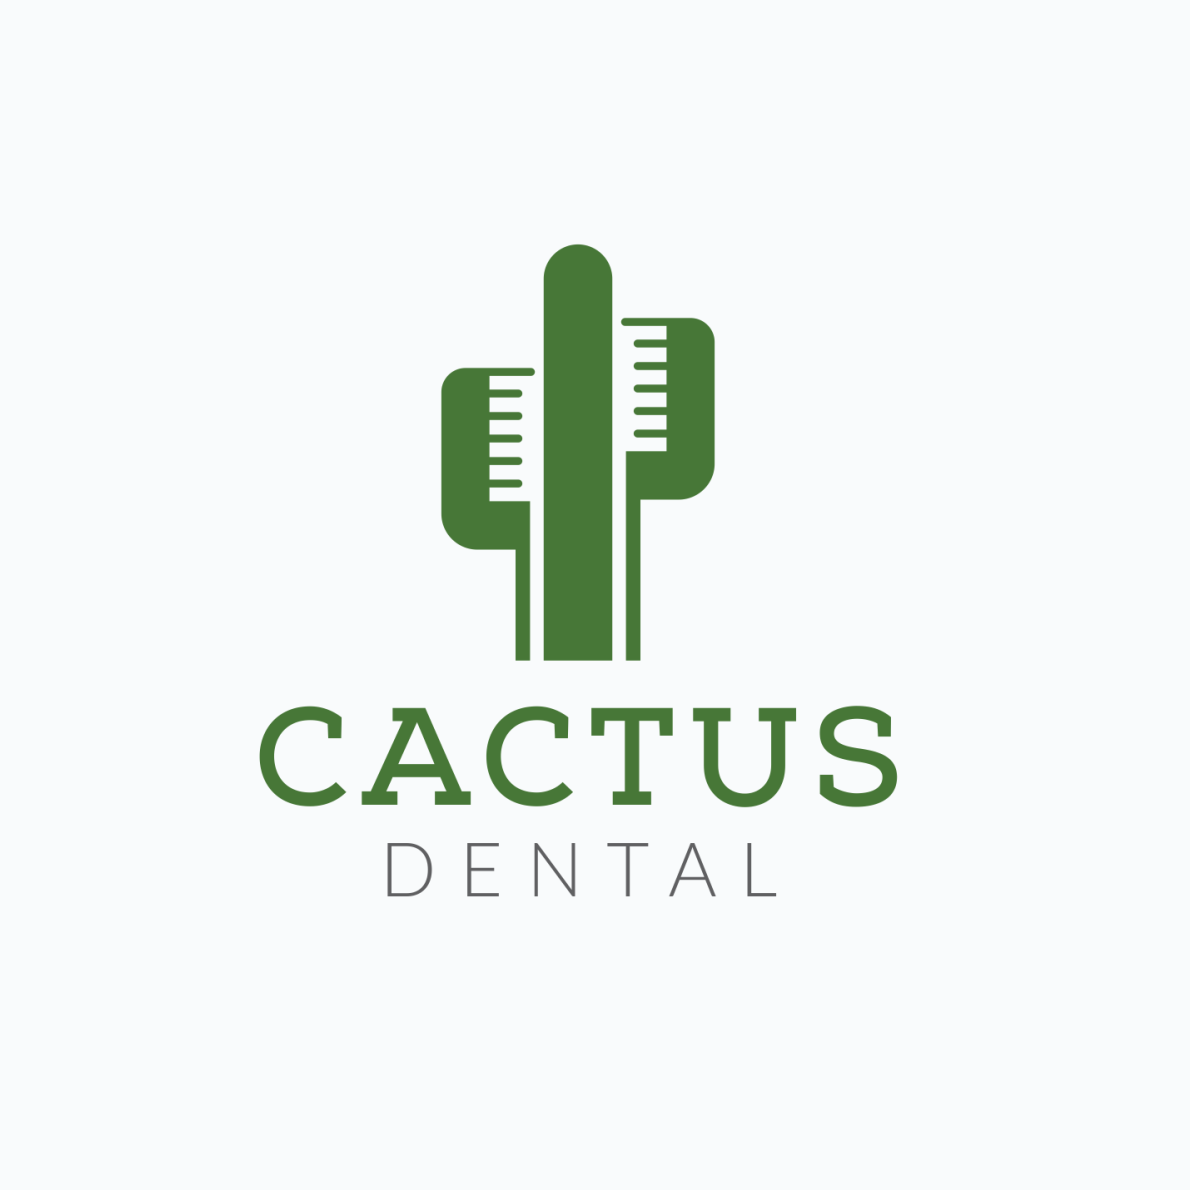 Diseño de logotipo original para Cactus Dental